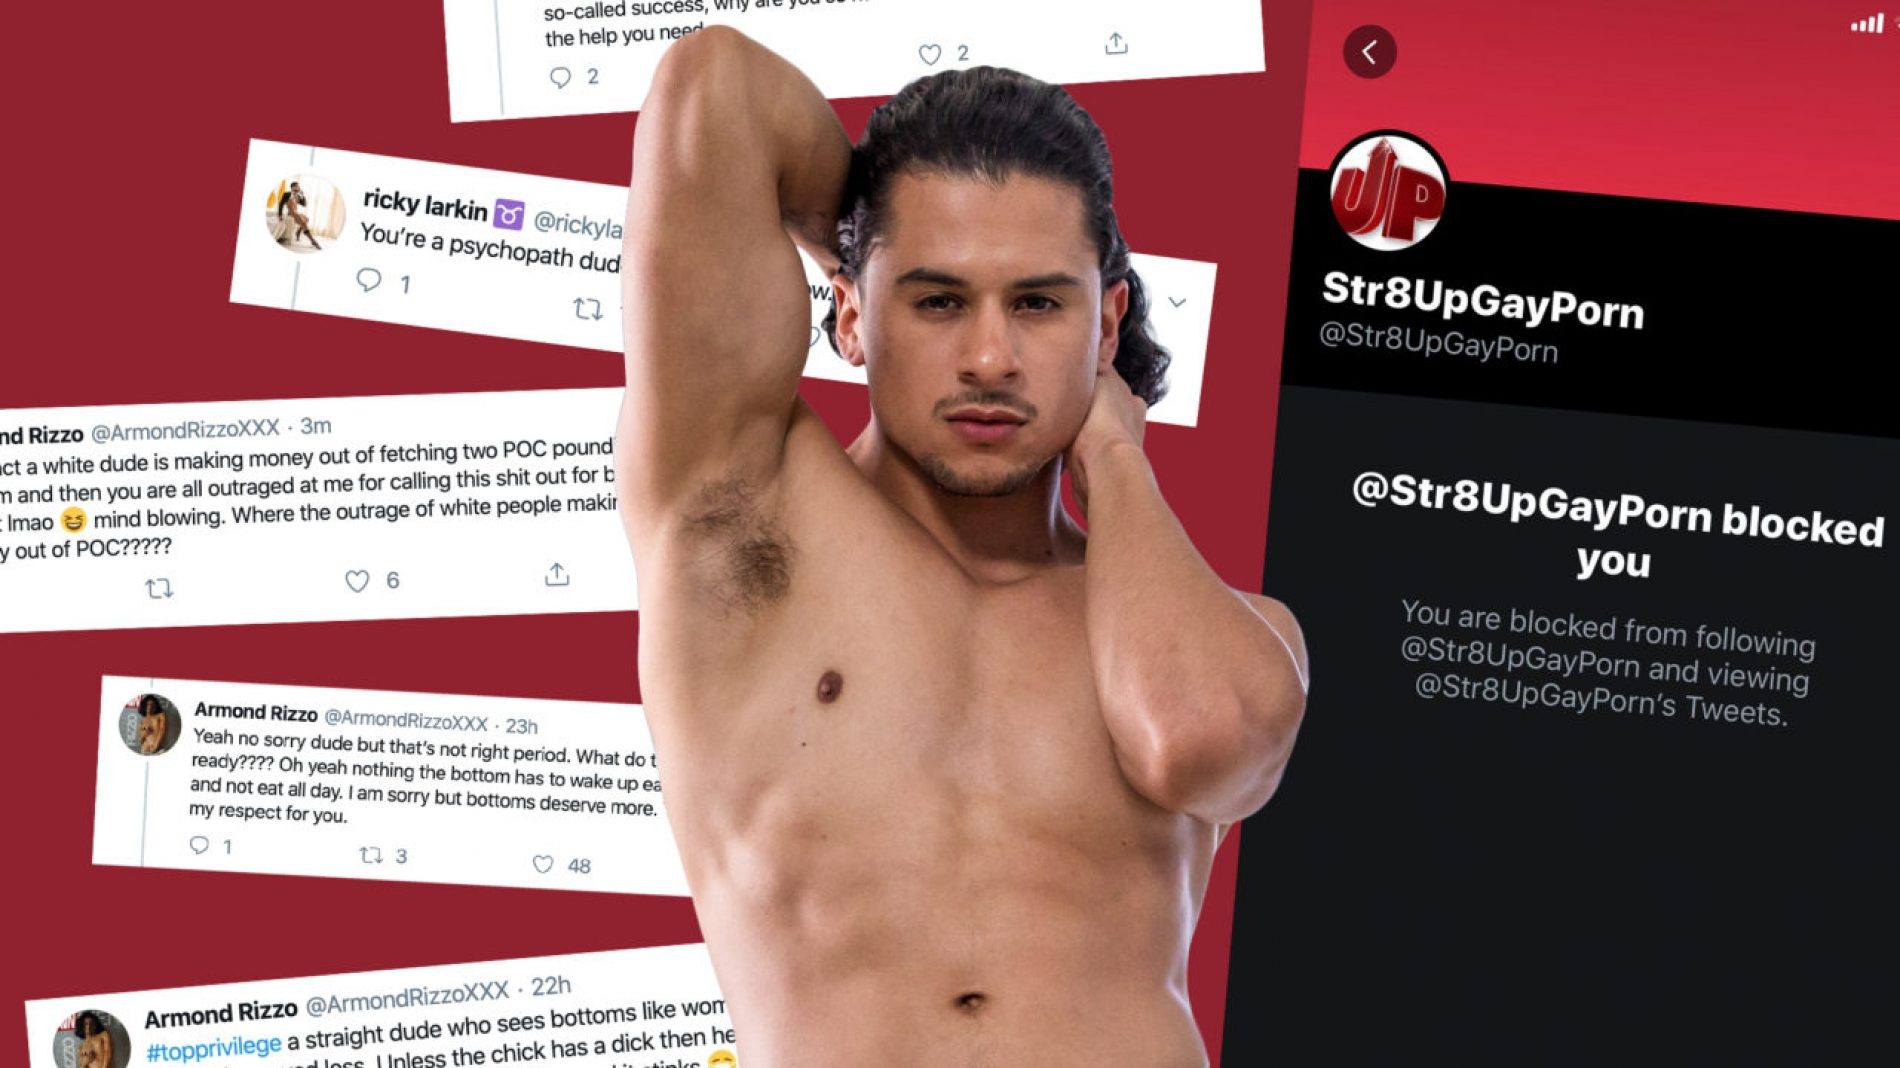 """Top Vs. Bottom"" Twitter Drama unfolds in the wake of Porn Star Armond Rizzo Calling Out Pay Disparity In Porn Industry"